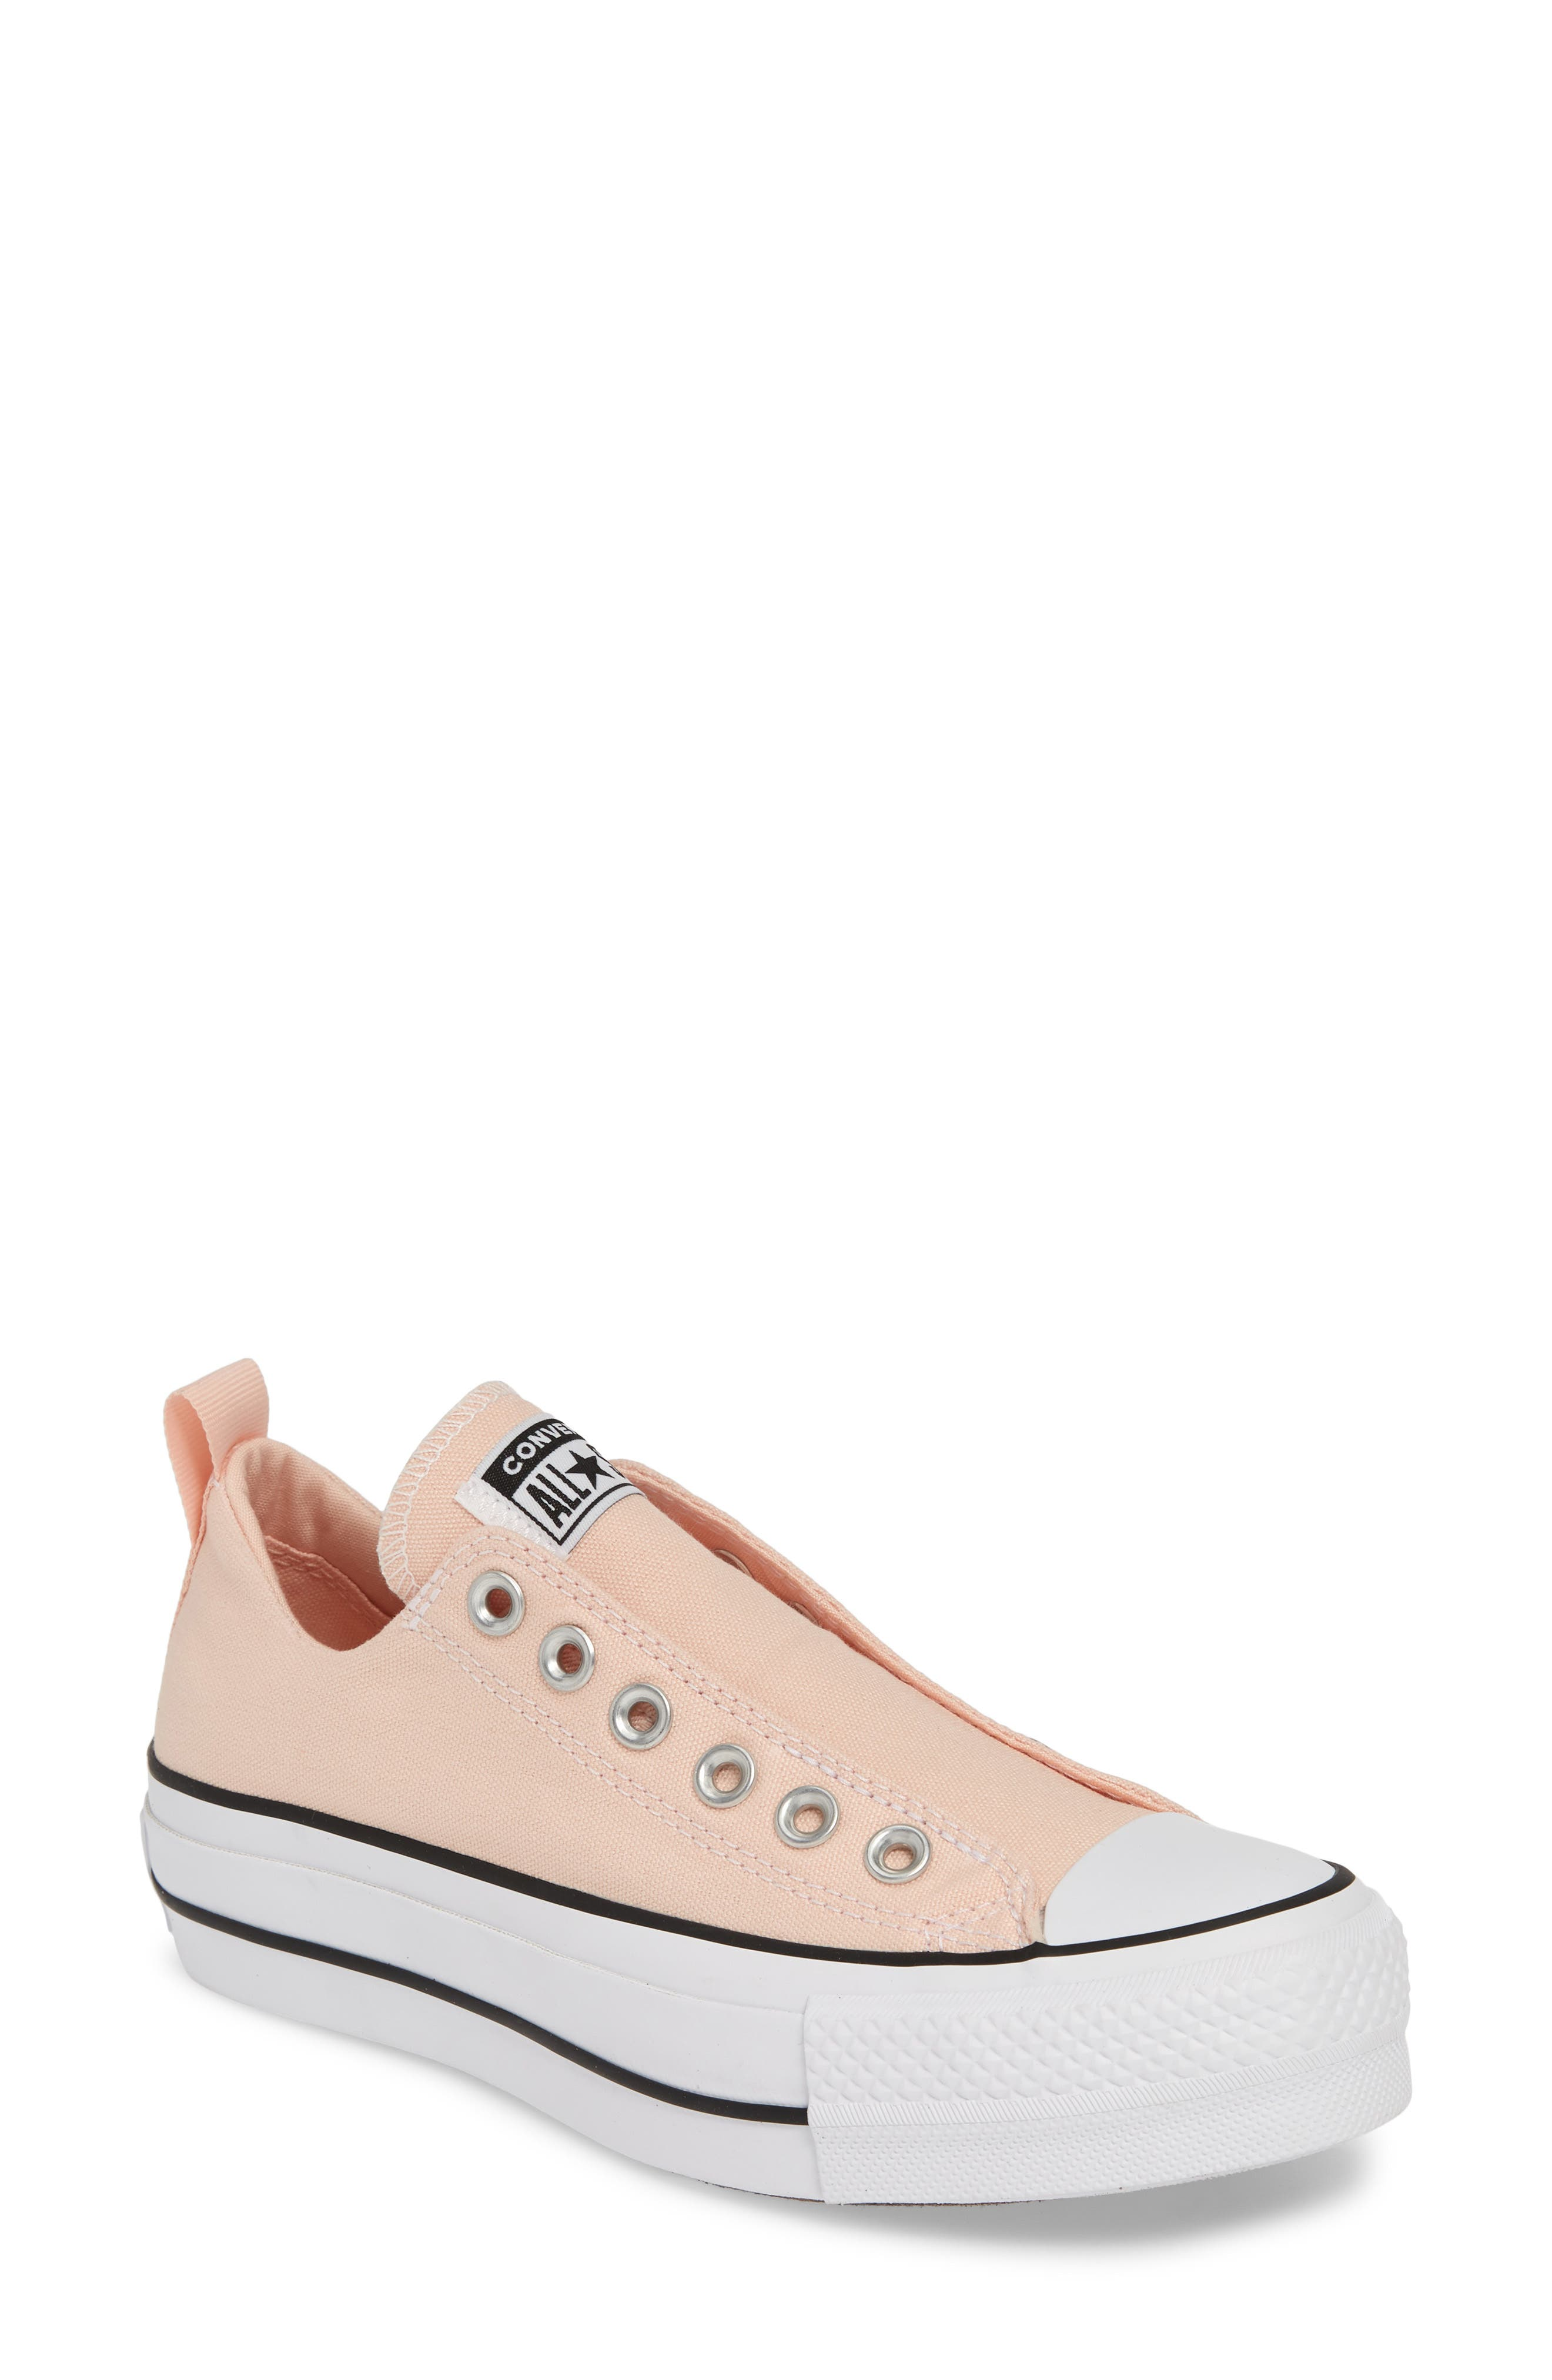 CONVERSE Chuck Taylor<sup>®</sup> All Star<sup>®</sup> Lift Slip-On Sneaker, Main, color, WASHED CORAL/ WHITE/ BLACK